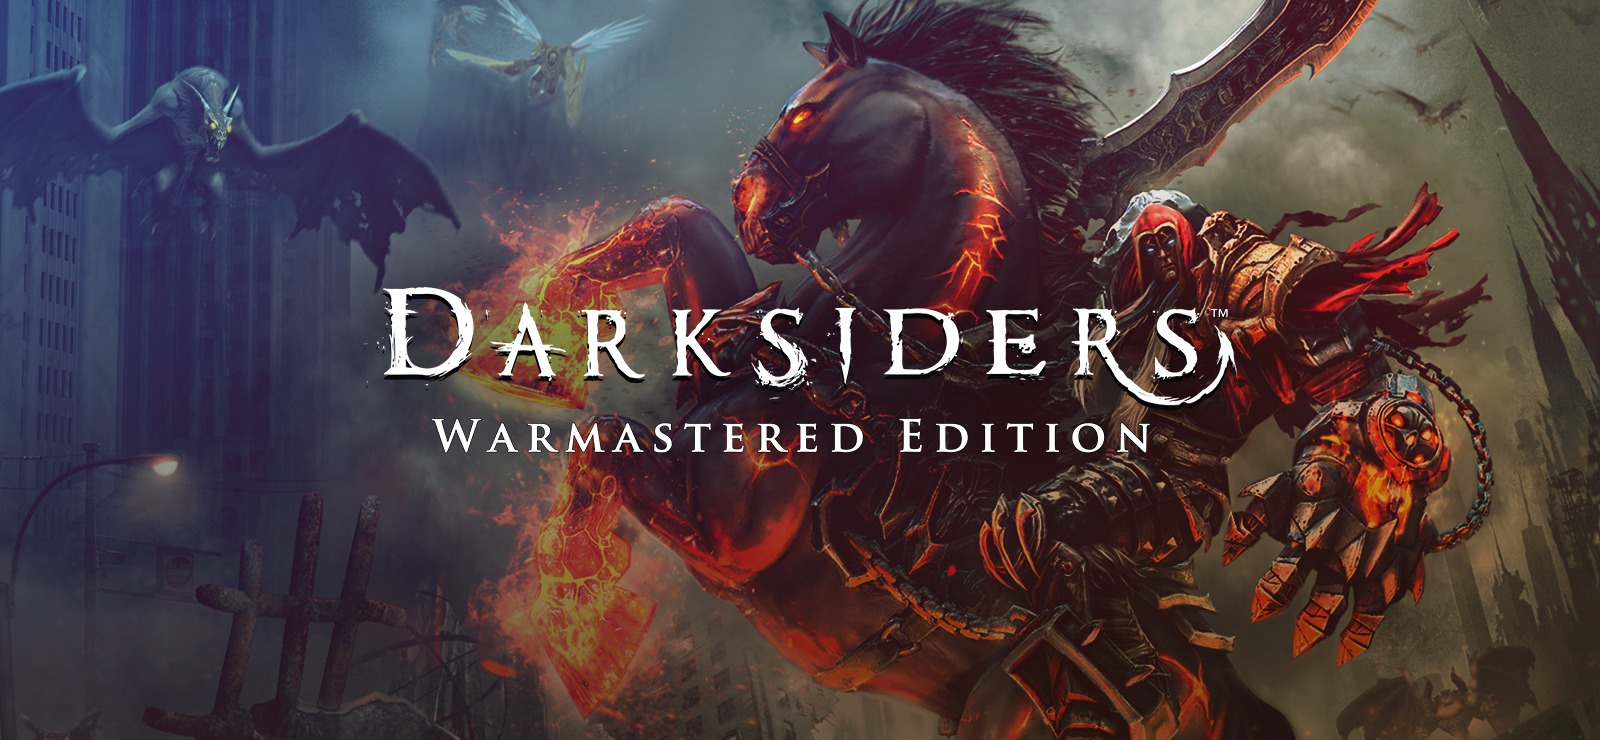 darksiders-warmastered-edition-obtiene-mejoras-en-xbox-one-x-frikigamers.com